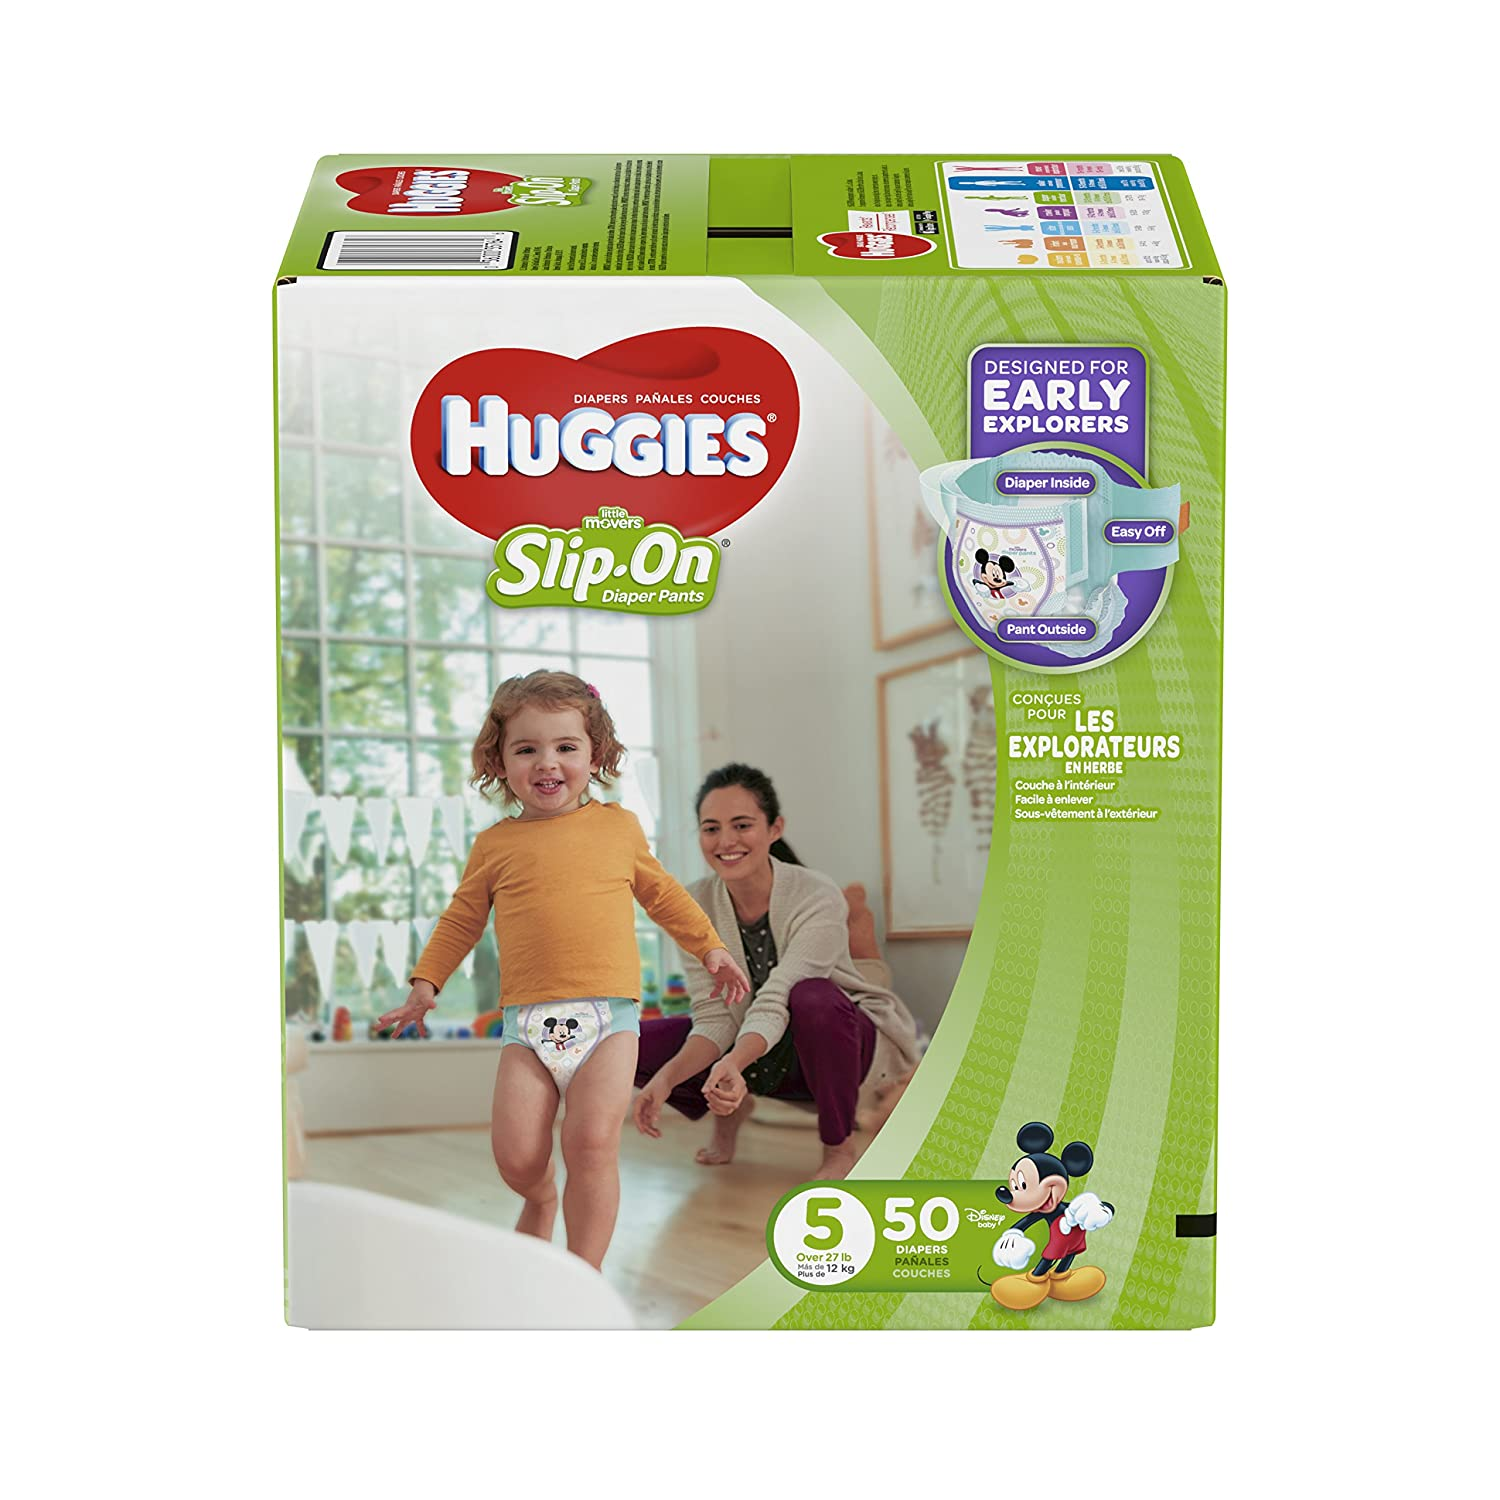 HUGGIES LITTLE MOVERS Slip-On Baby Diapers, Size 6, 42ct Kimberly-Clark Corp. CA 10036000373940